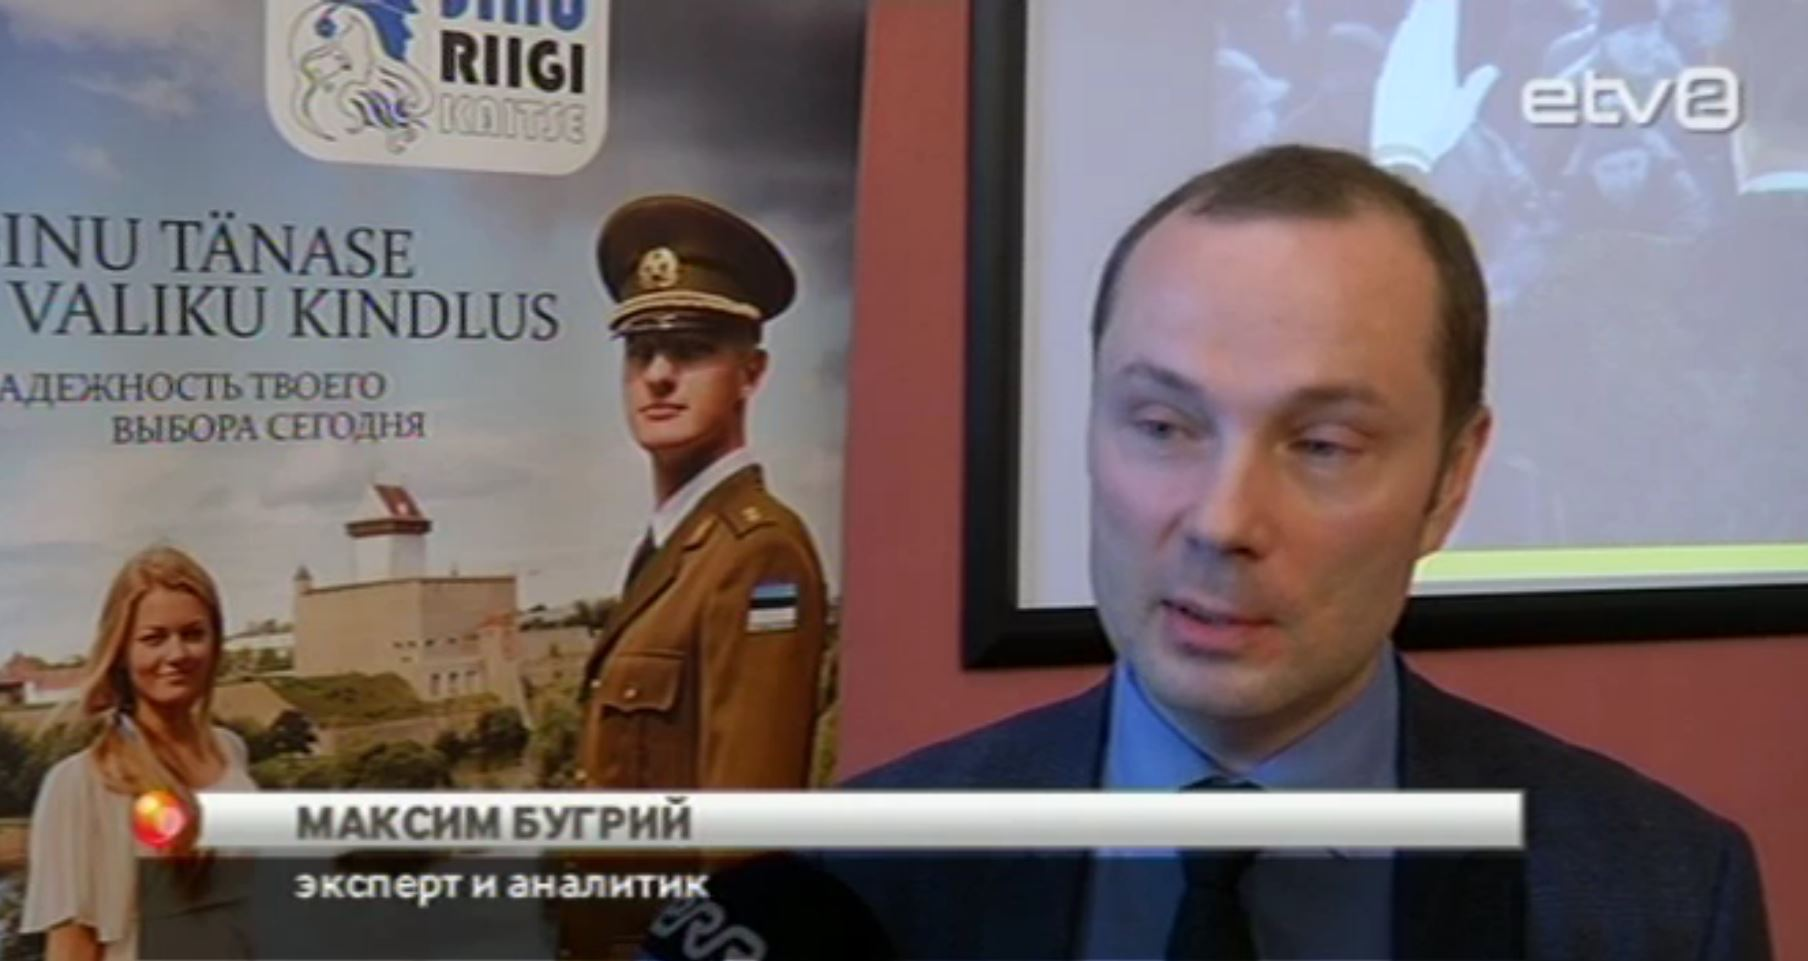 Image for Analysts at Narva Event Discuss Lessons Ukraine Crisis Holds for Estonia